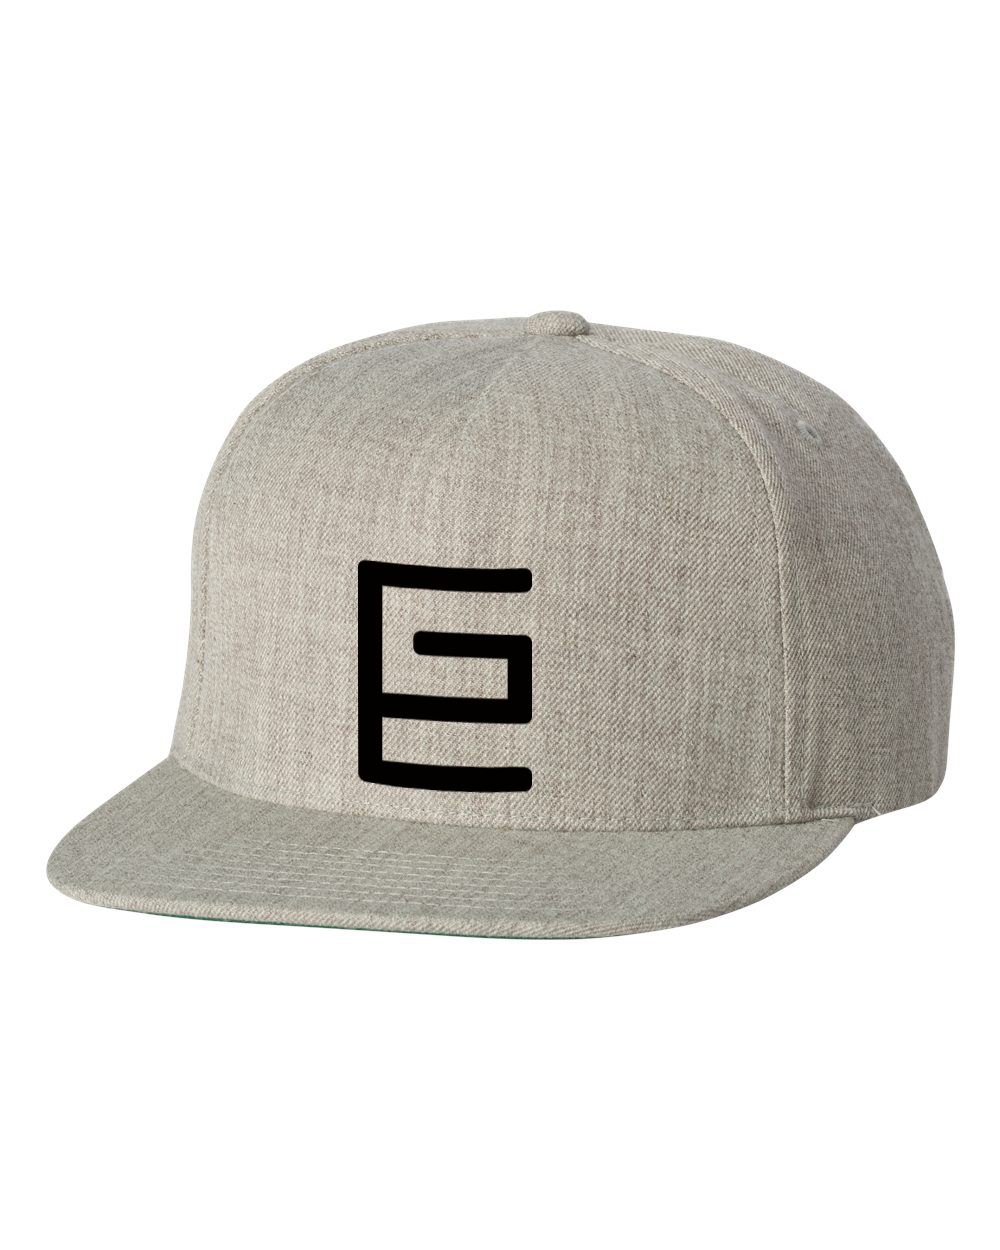 Classic Snapback (Gray) - Gravitated Equations